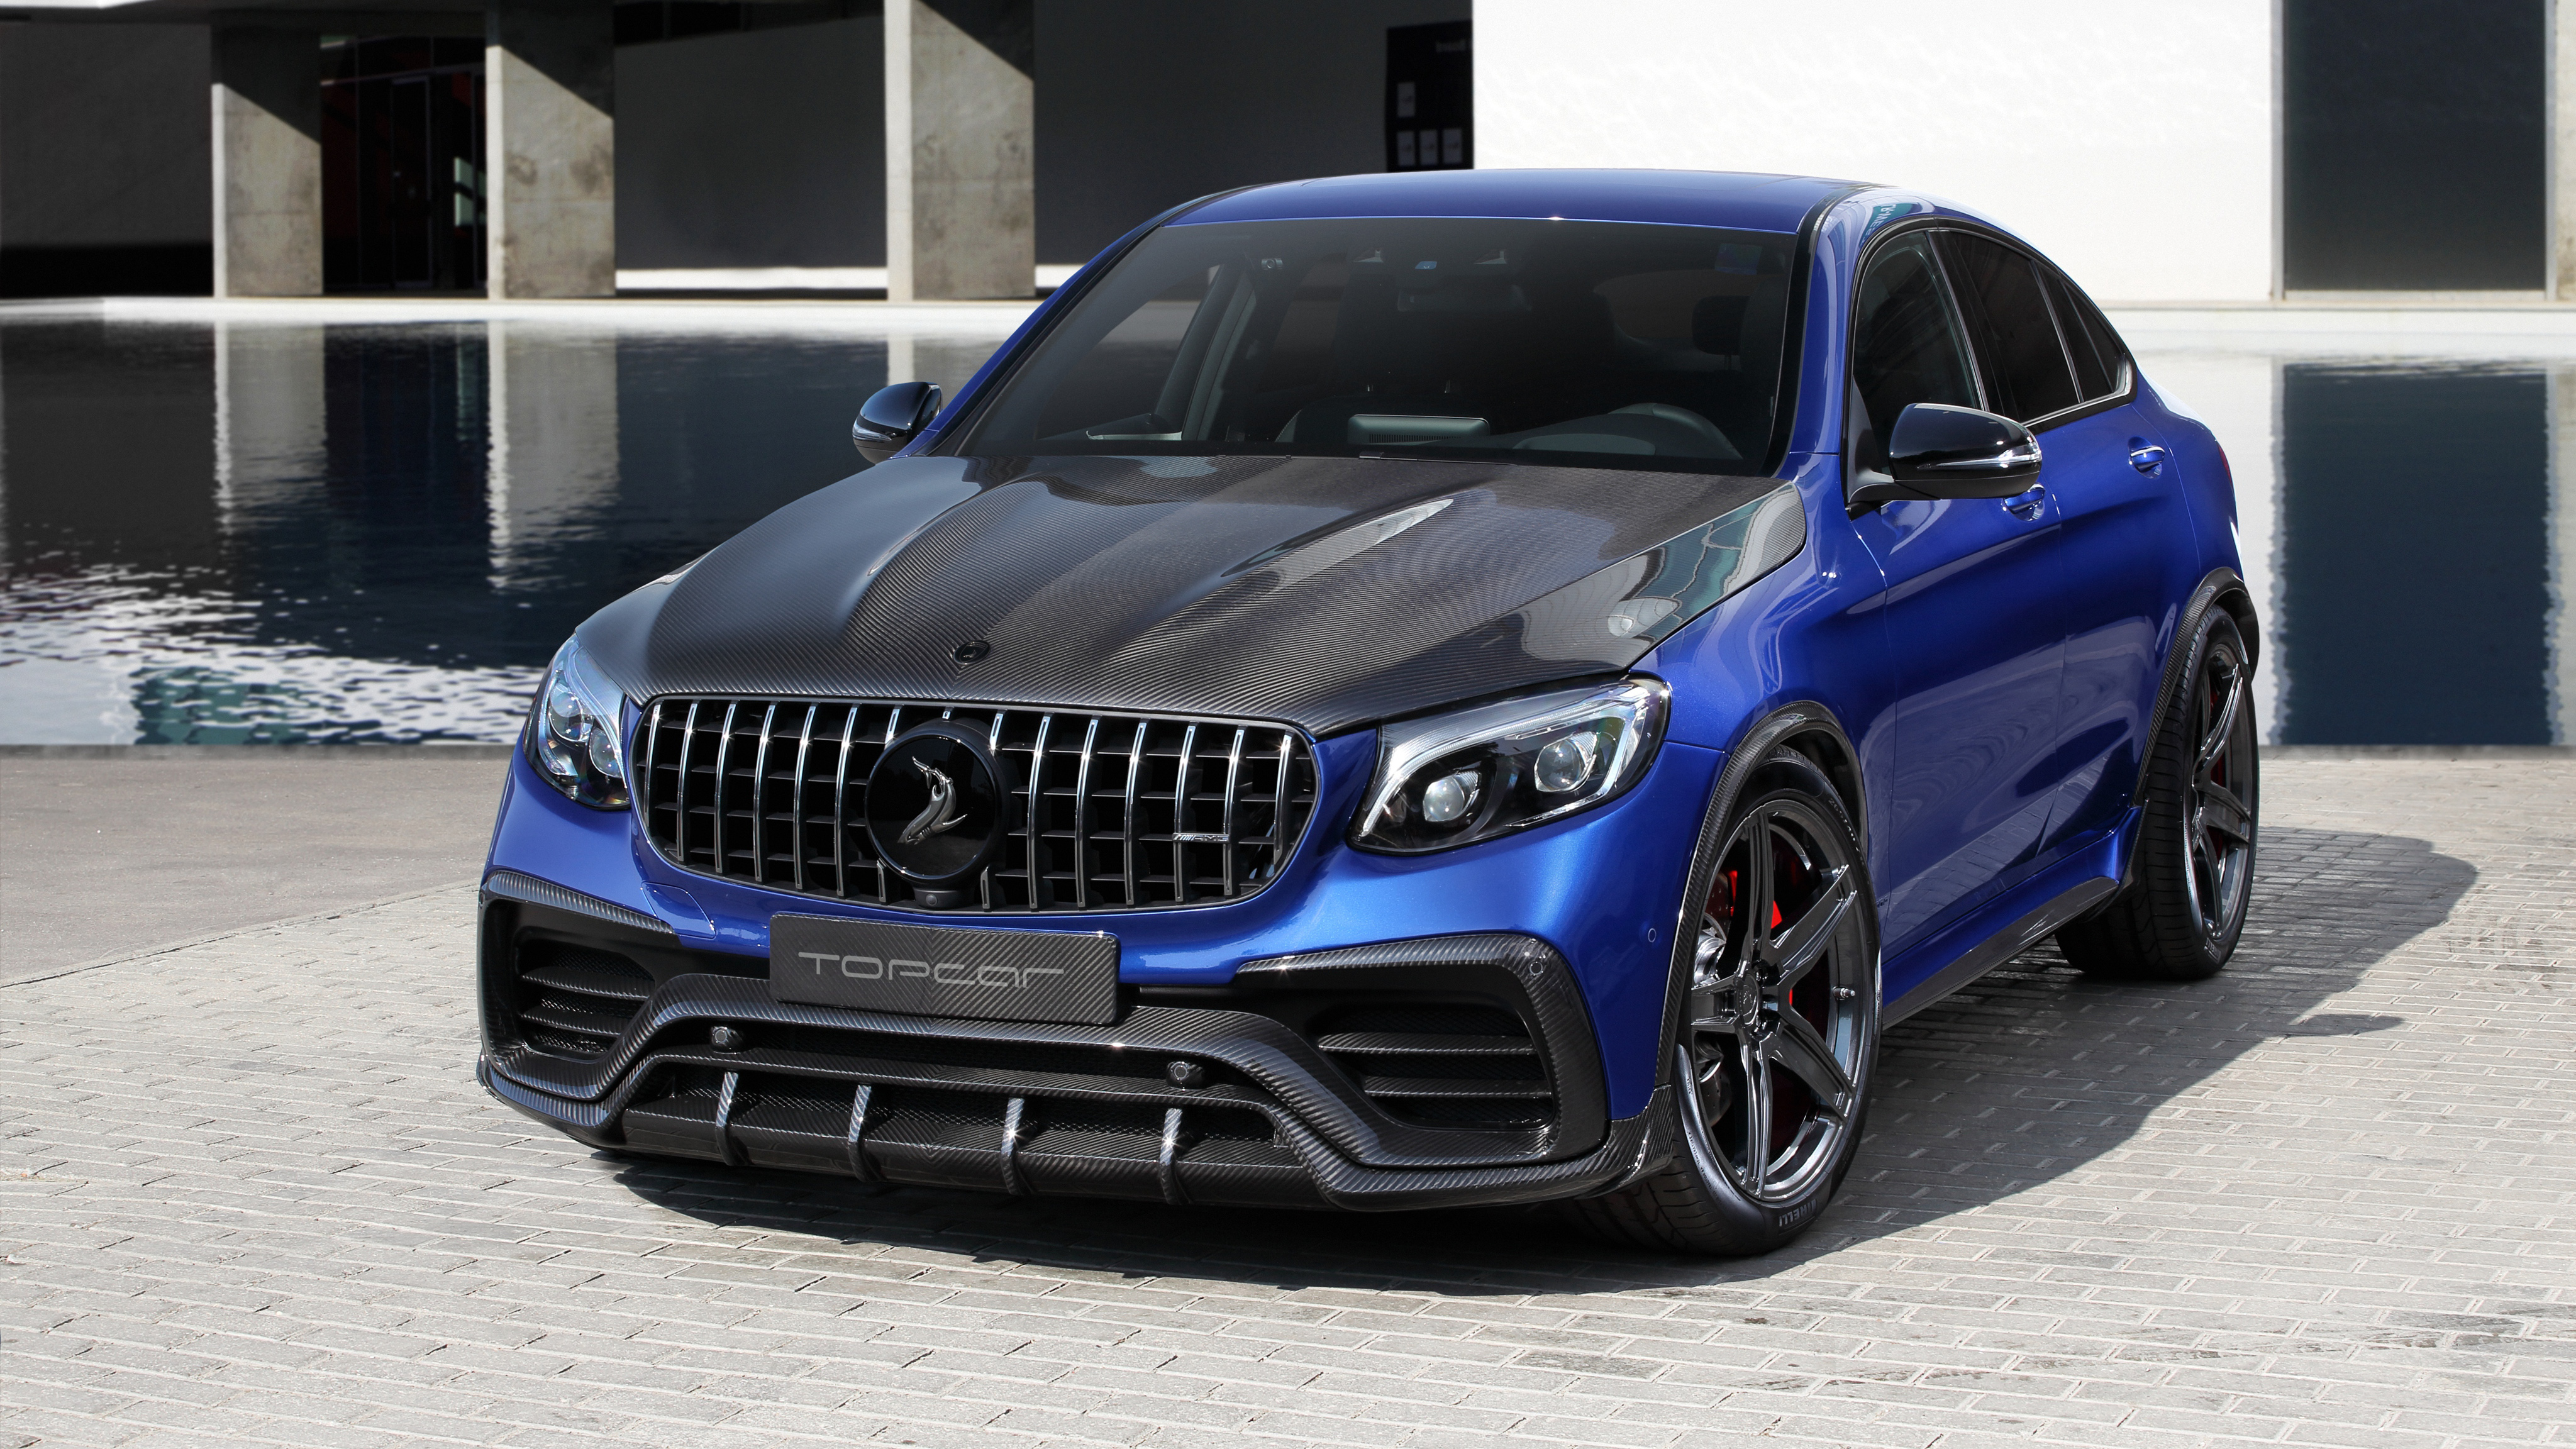 Topcar Mercedes Amg Glc Klasse Coupe Inferno 4k Wallpaper Hd Car Wallpapers Id 11265